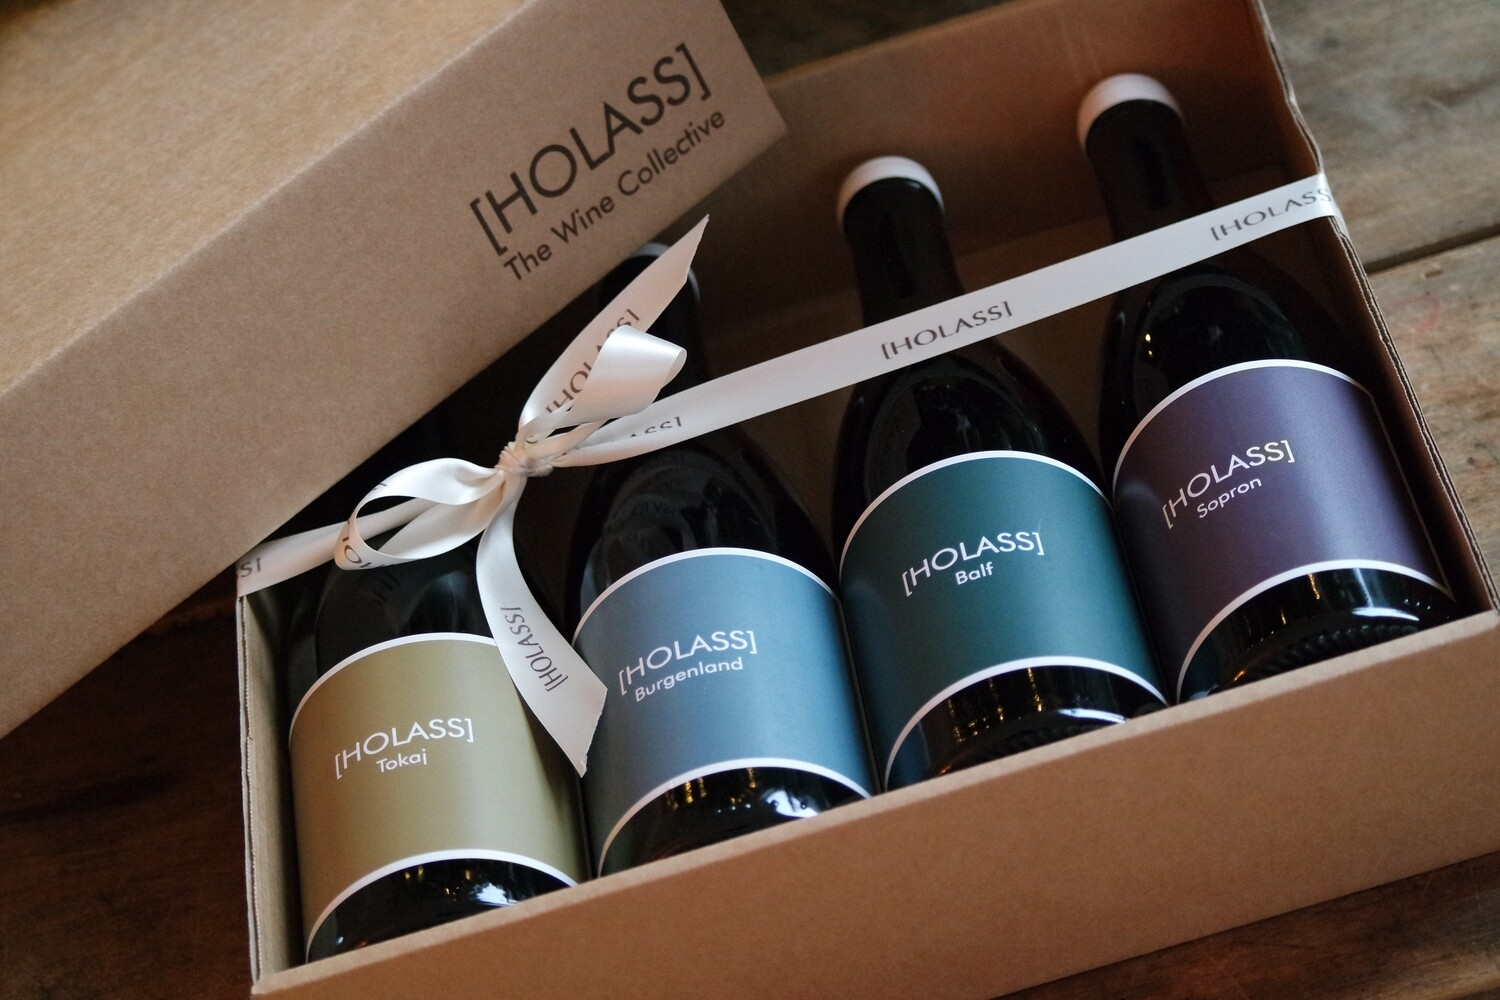 GIFT BOX with 4 [HOLASS] bottles